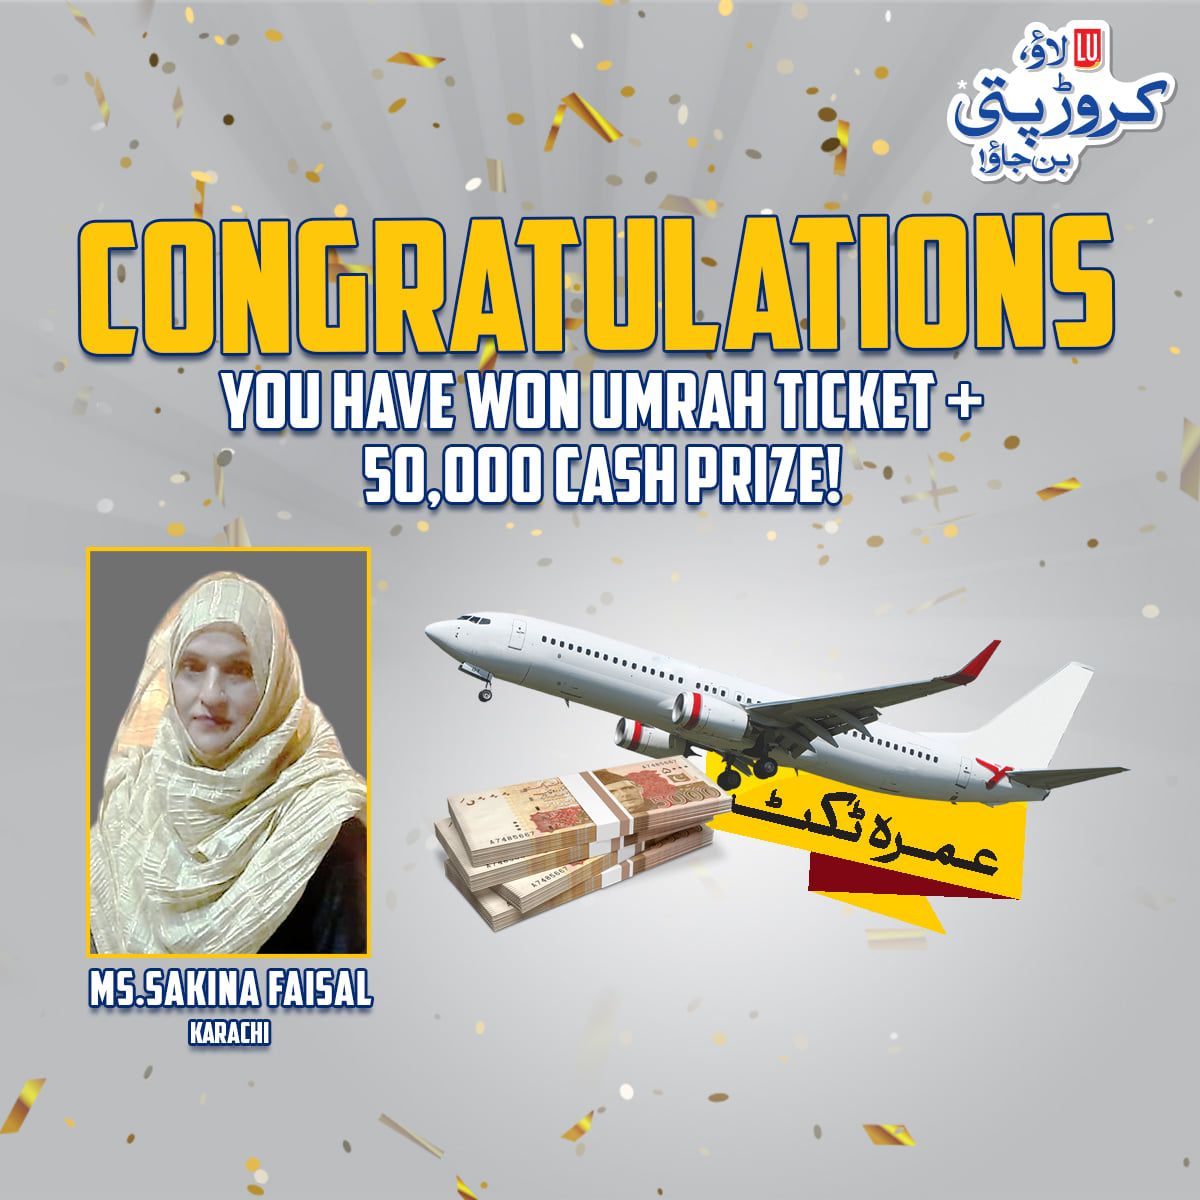 LU Biscuits Lucky Draw Umrah Ticket Winner Name Lists